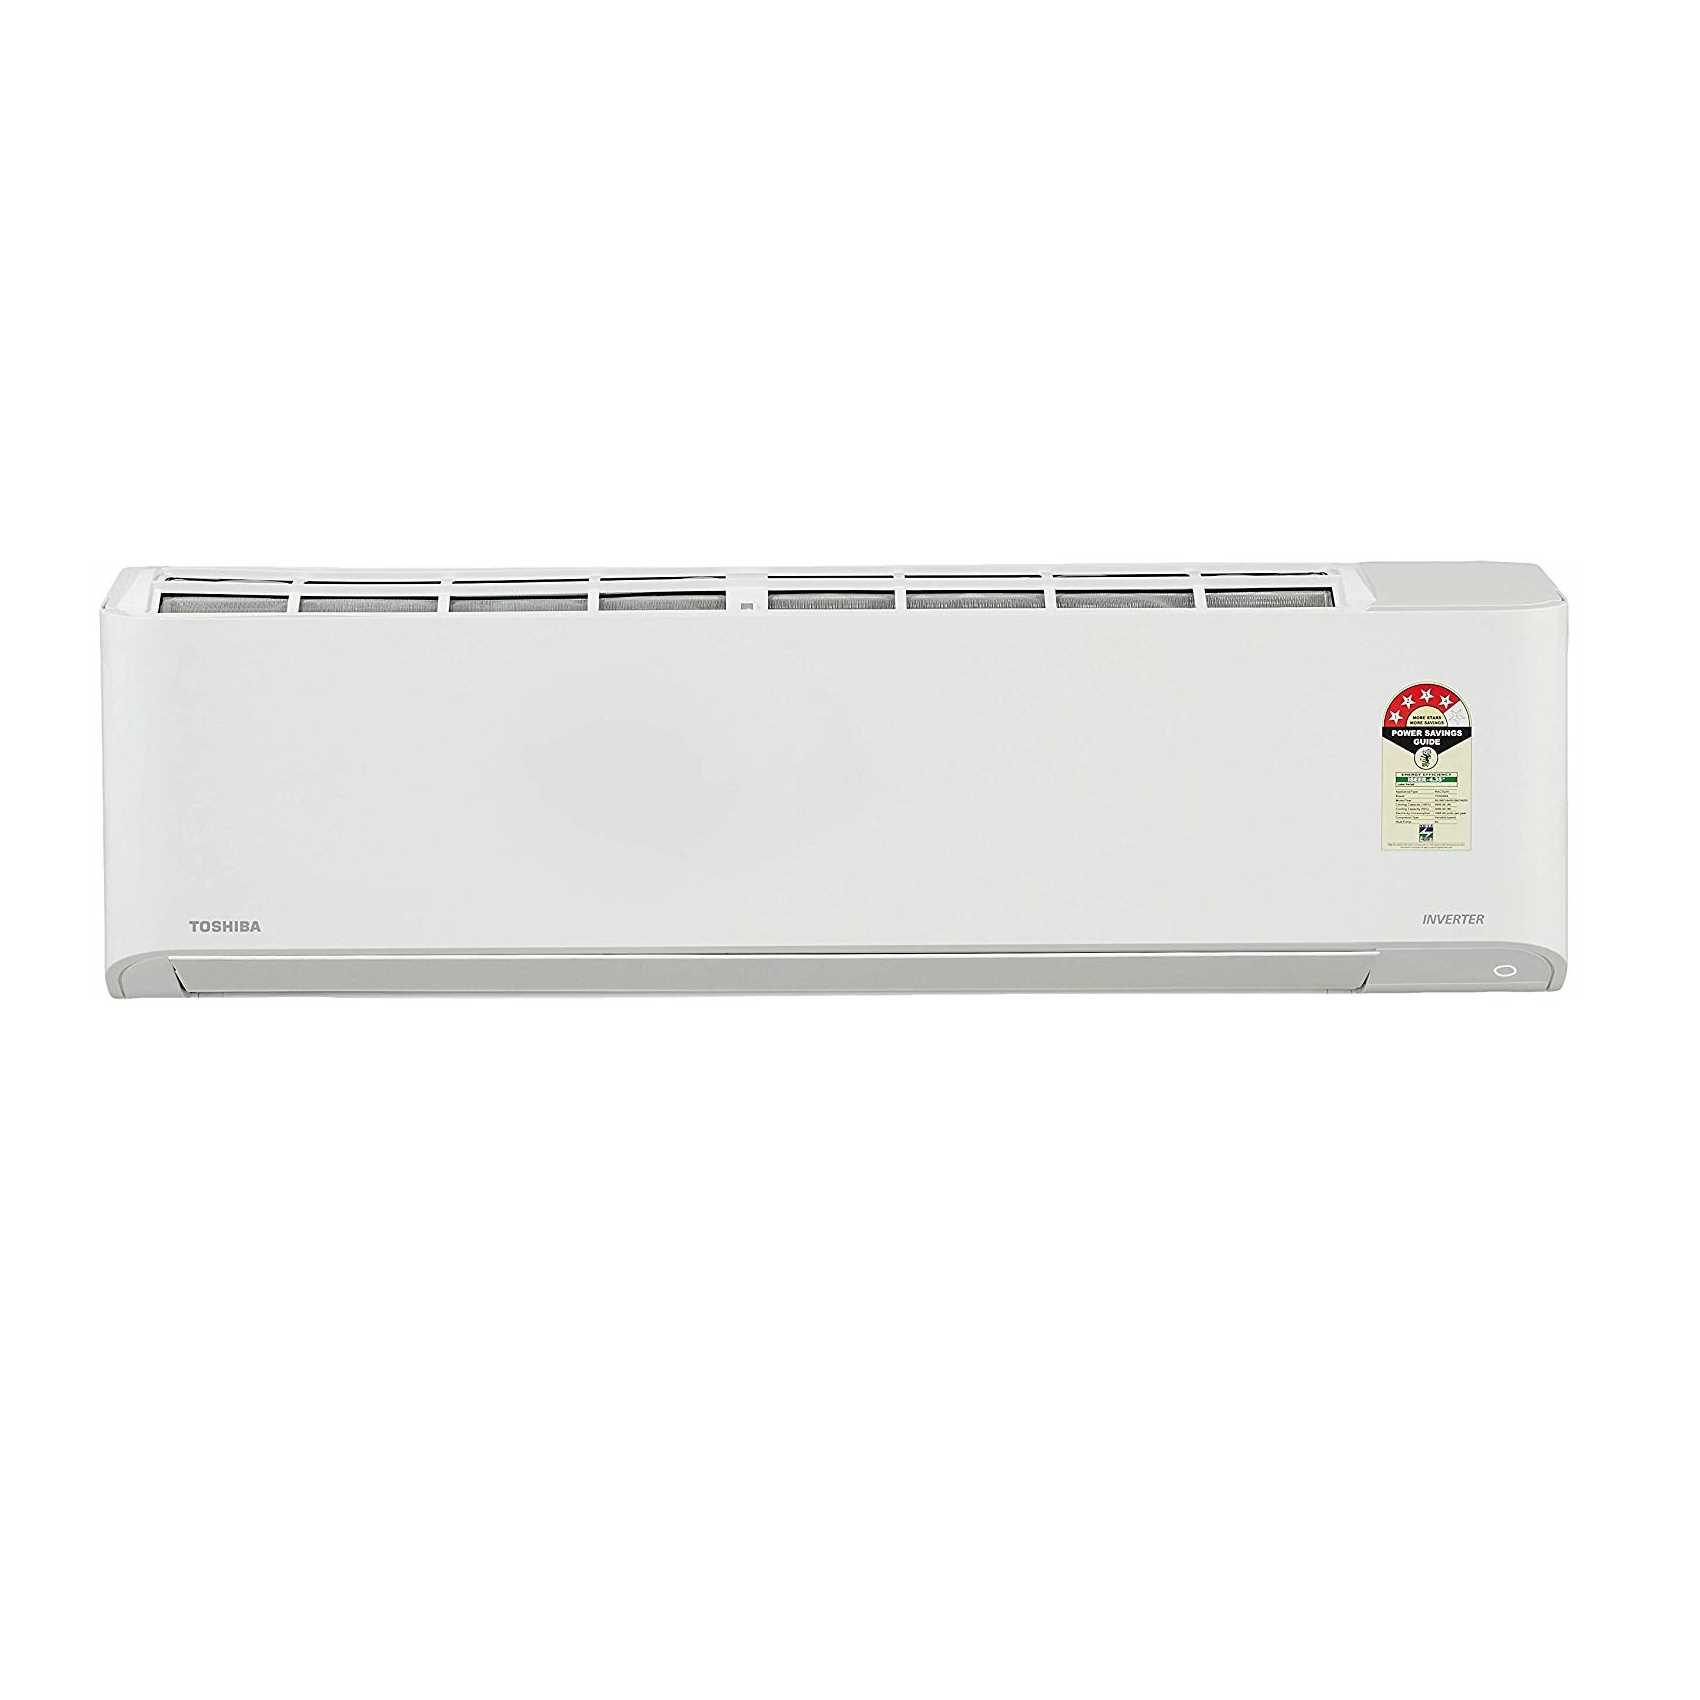 Toshiba RAS 24BKCV IN 1.8 Ton 4 Star Inverter Split AC